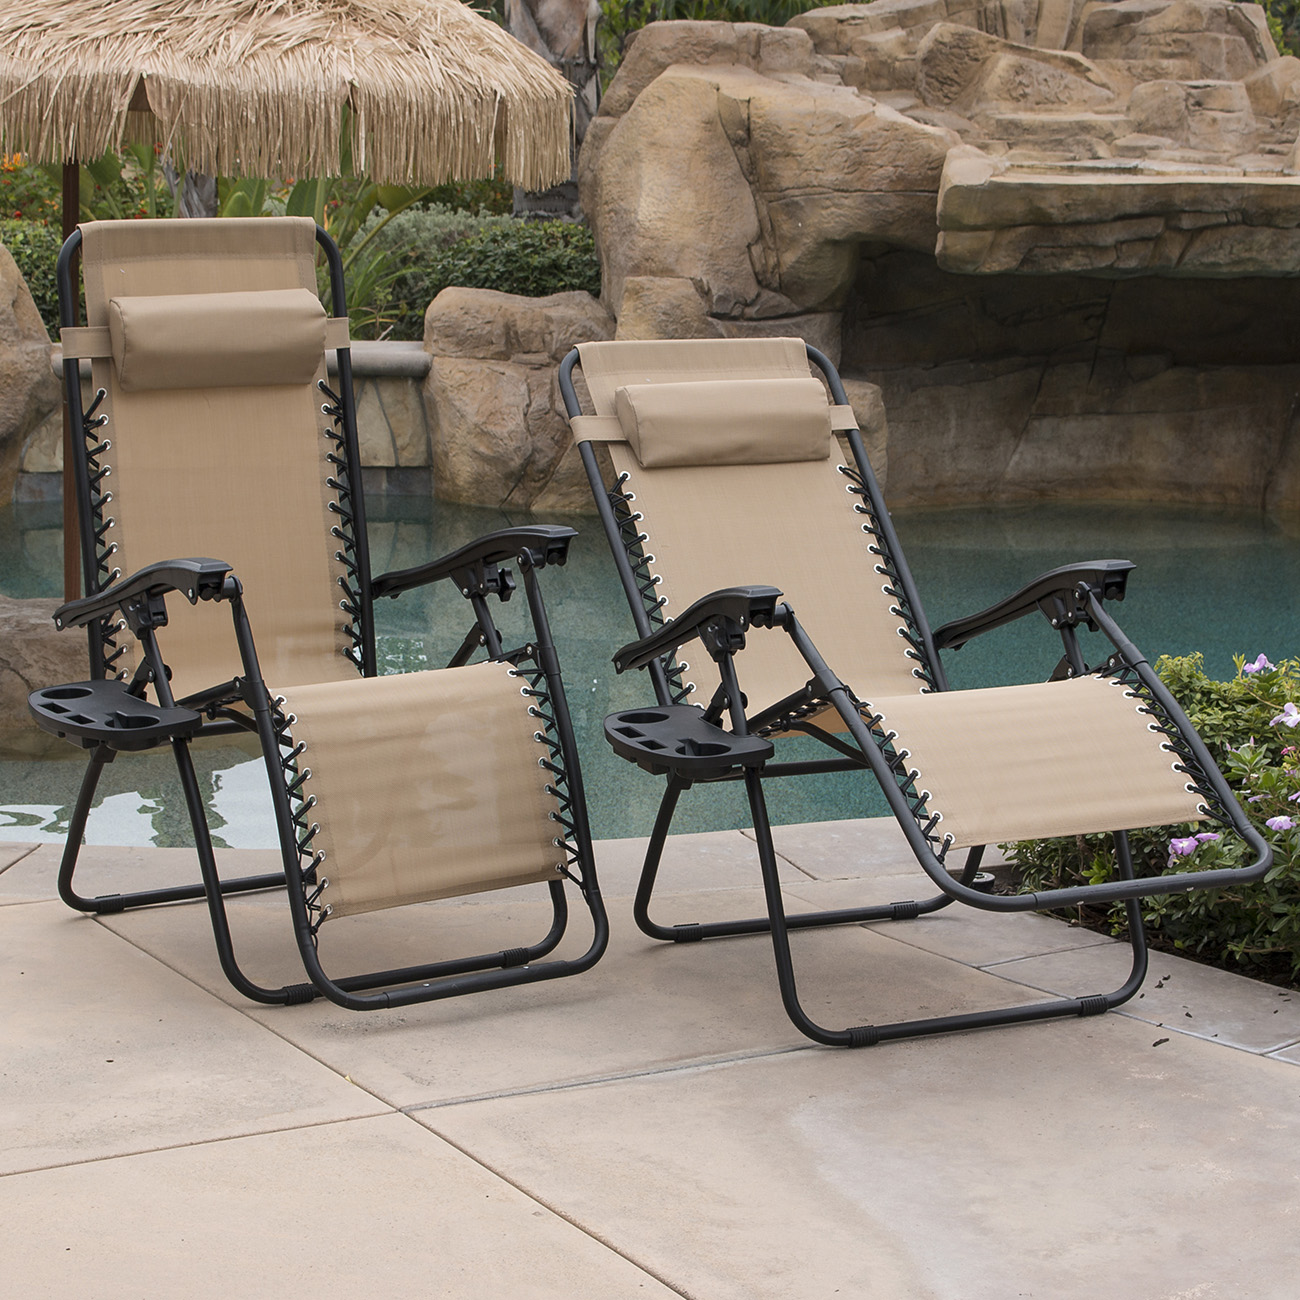 Outdoor patio lounge chairs - Image Is Loading 2 Outdoor Zero Gravity Lounge Chair Beach Patio